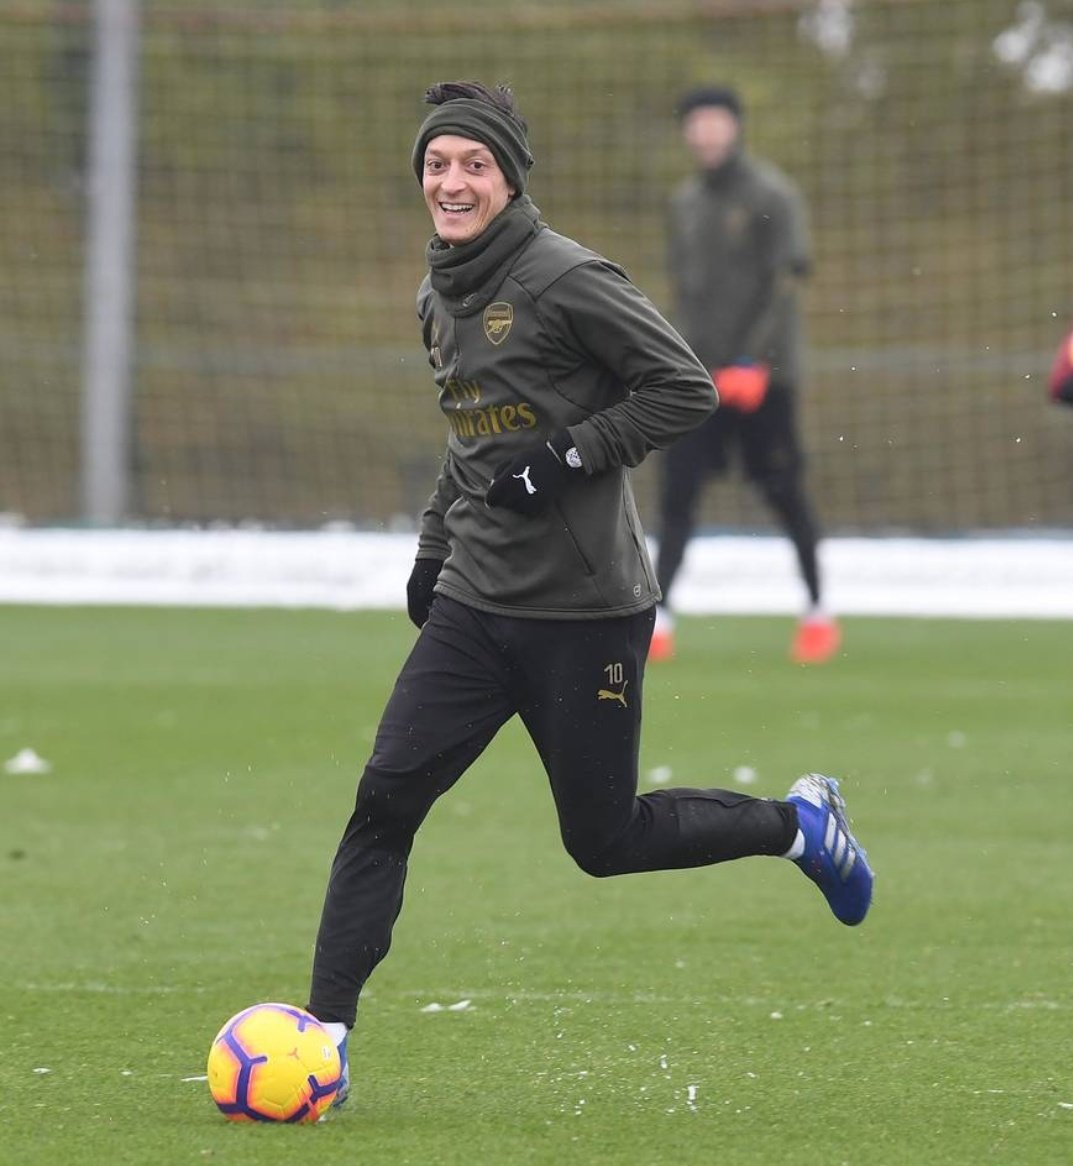 We really miss Ozil. Whatever the problems I really hope the management sort it out. We are suffering because of poor decision making and we need our best players to play every match.